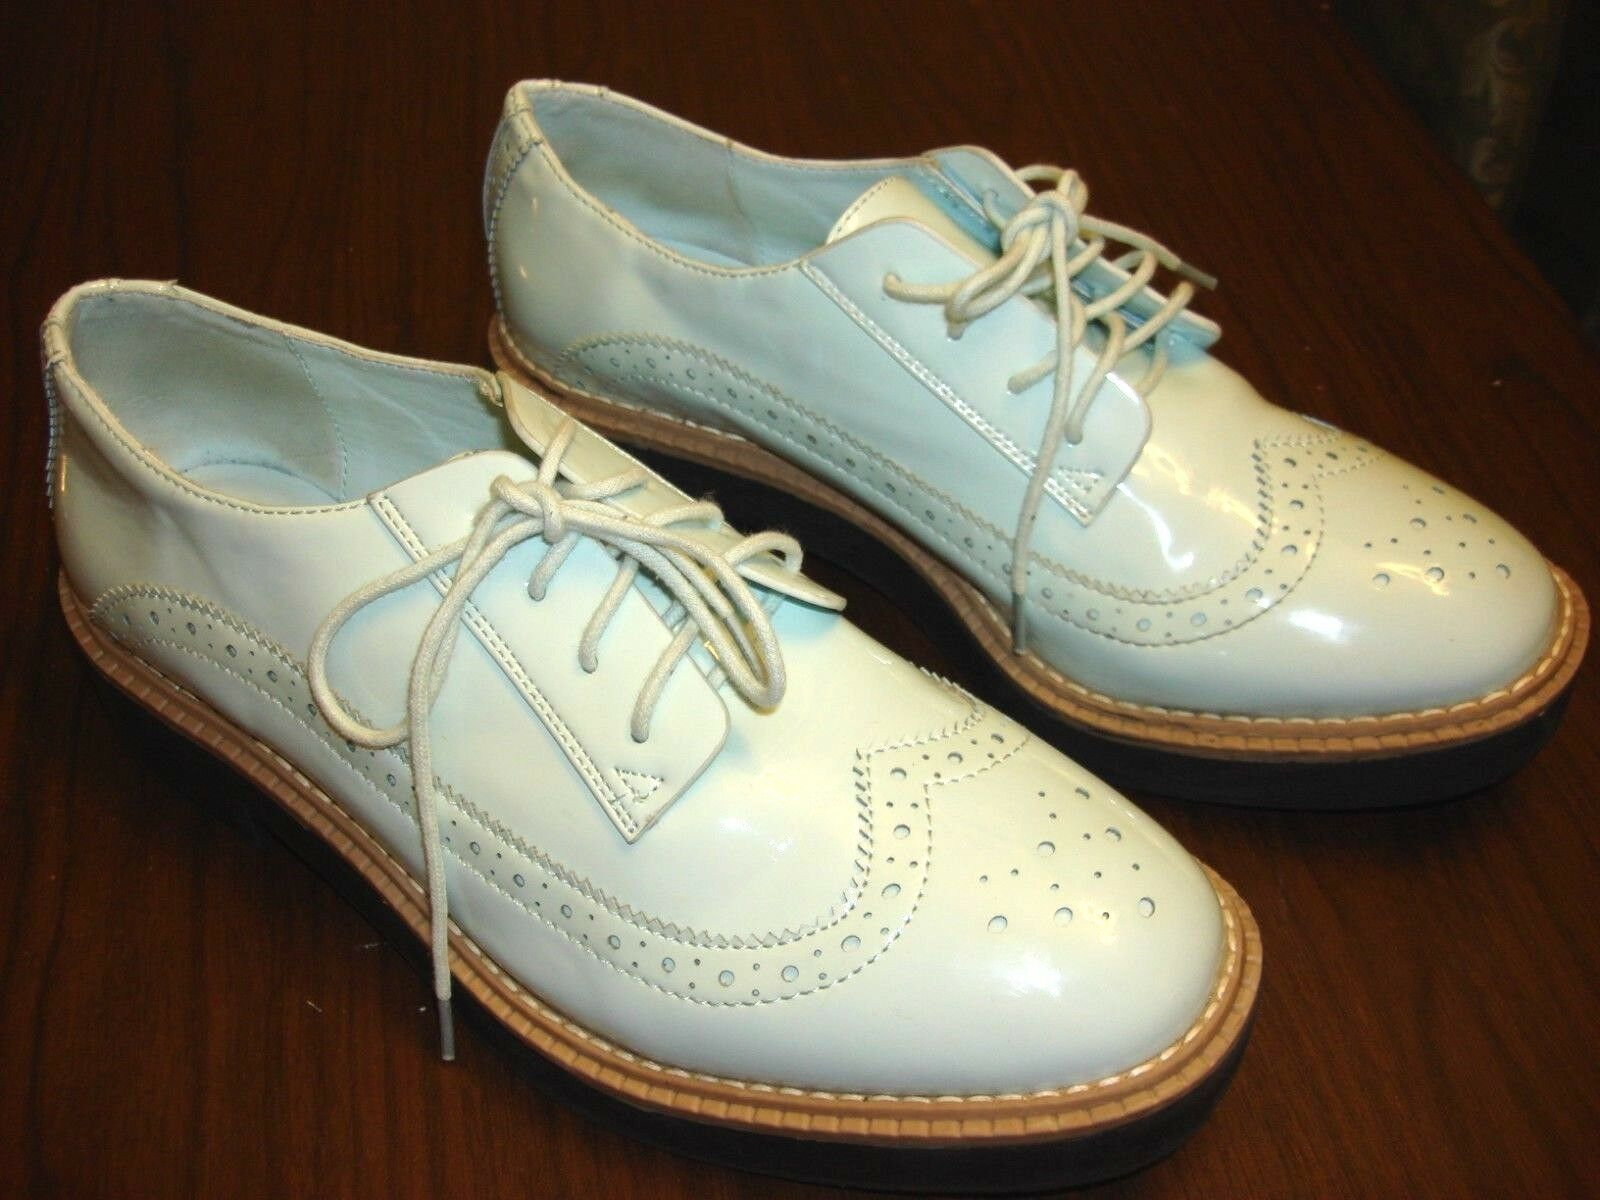 H&M Rubber Sole Light Blue PATENT WINGTIP Scarpe Oxford DIVIDED EUR 39 US Taglia 8